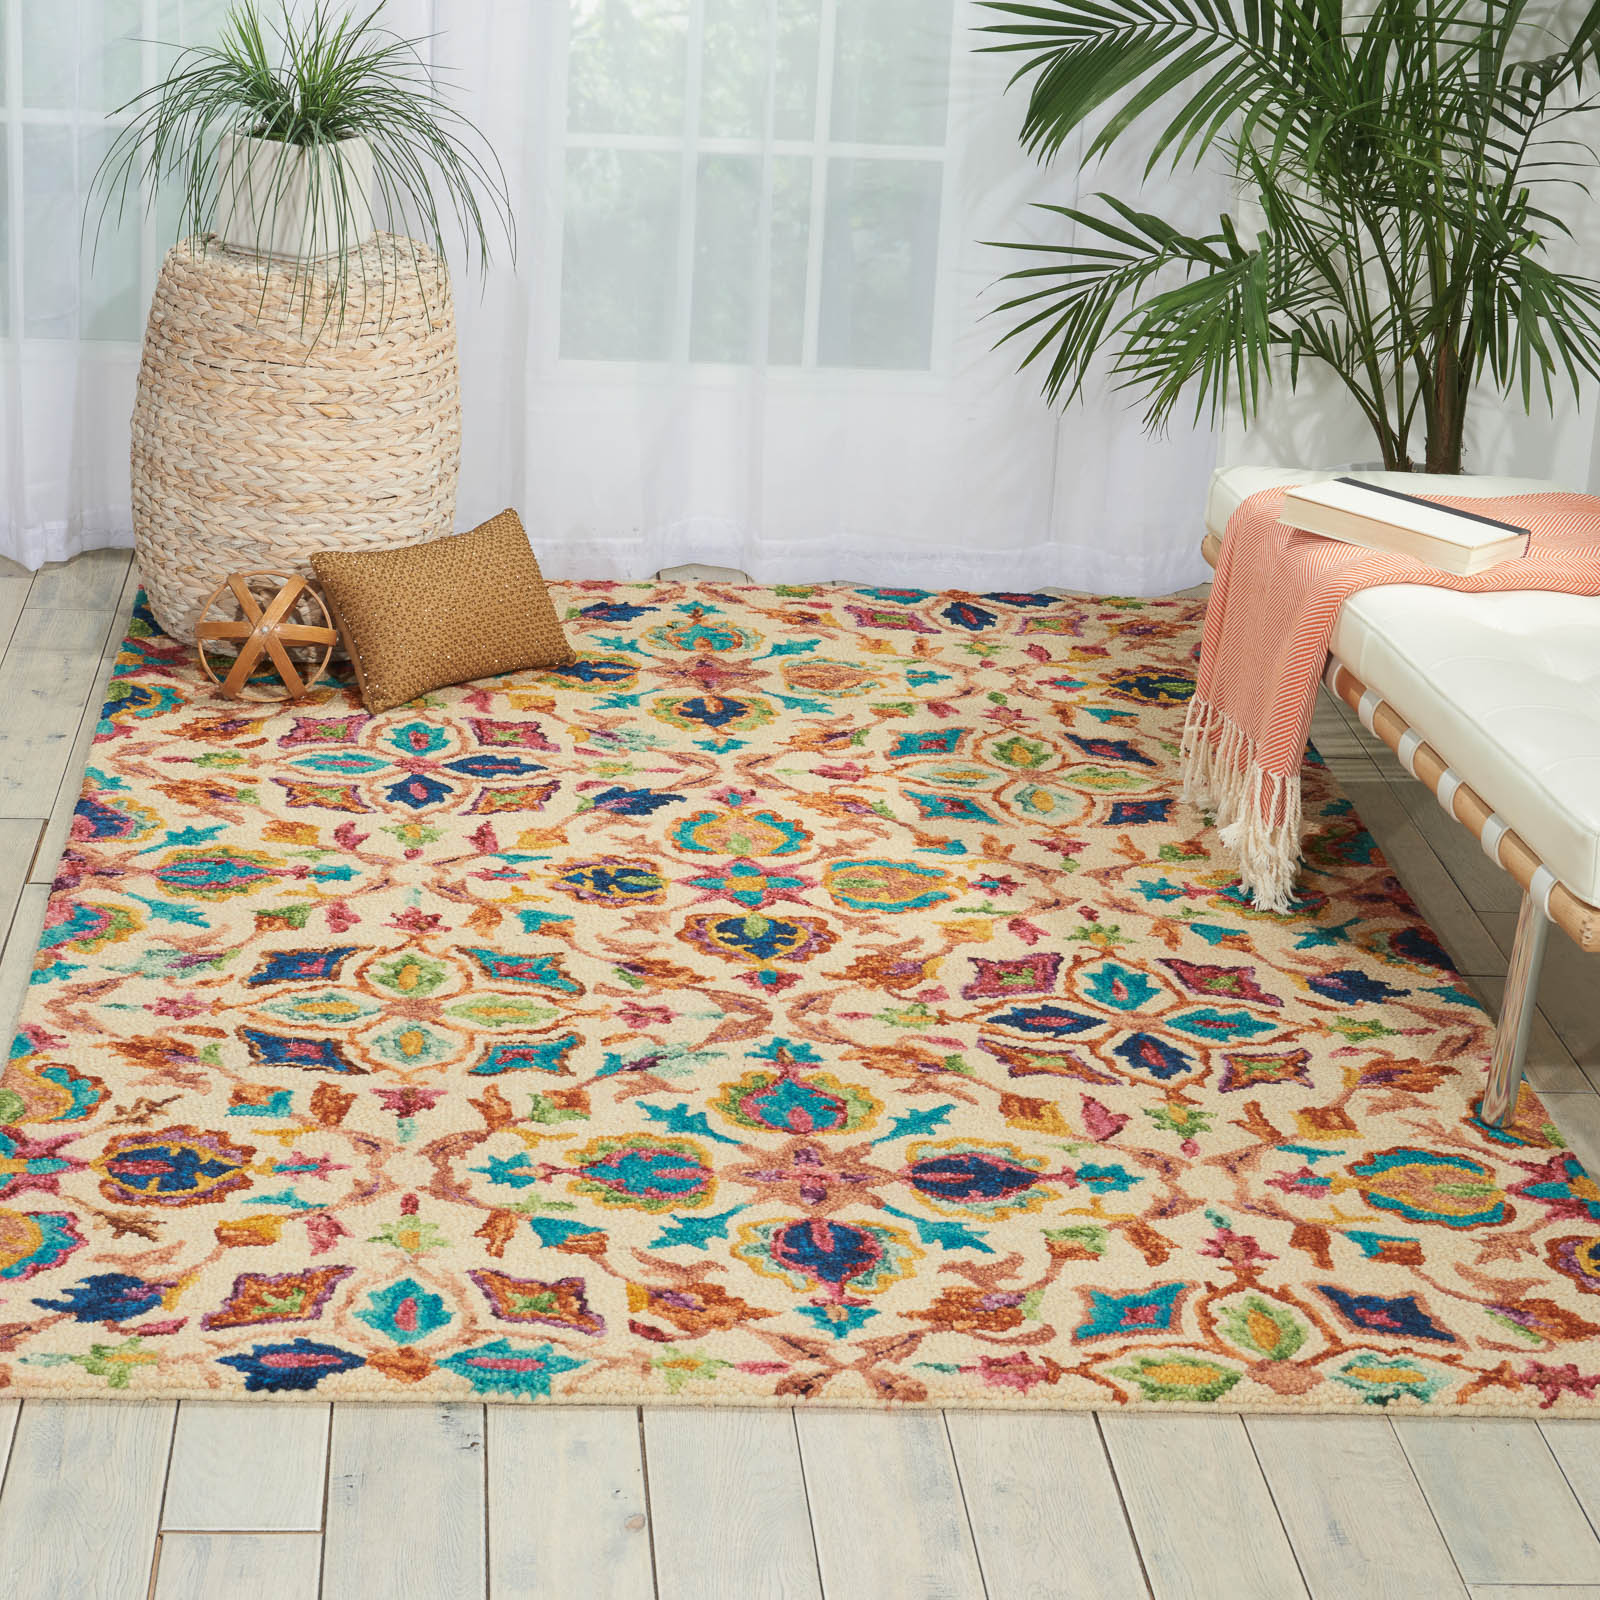 Vibrant Rugs VIB08 In Teal By Nourison Buy Online From The